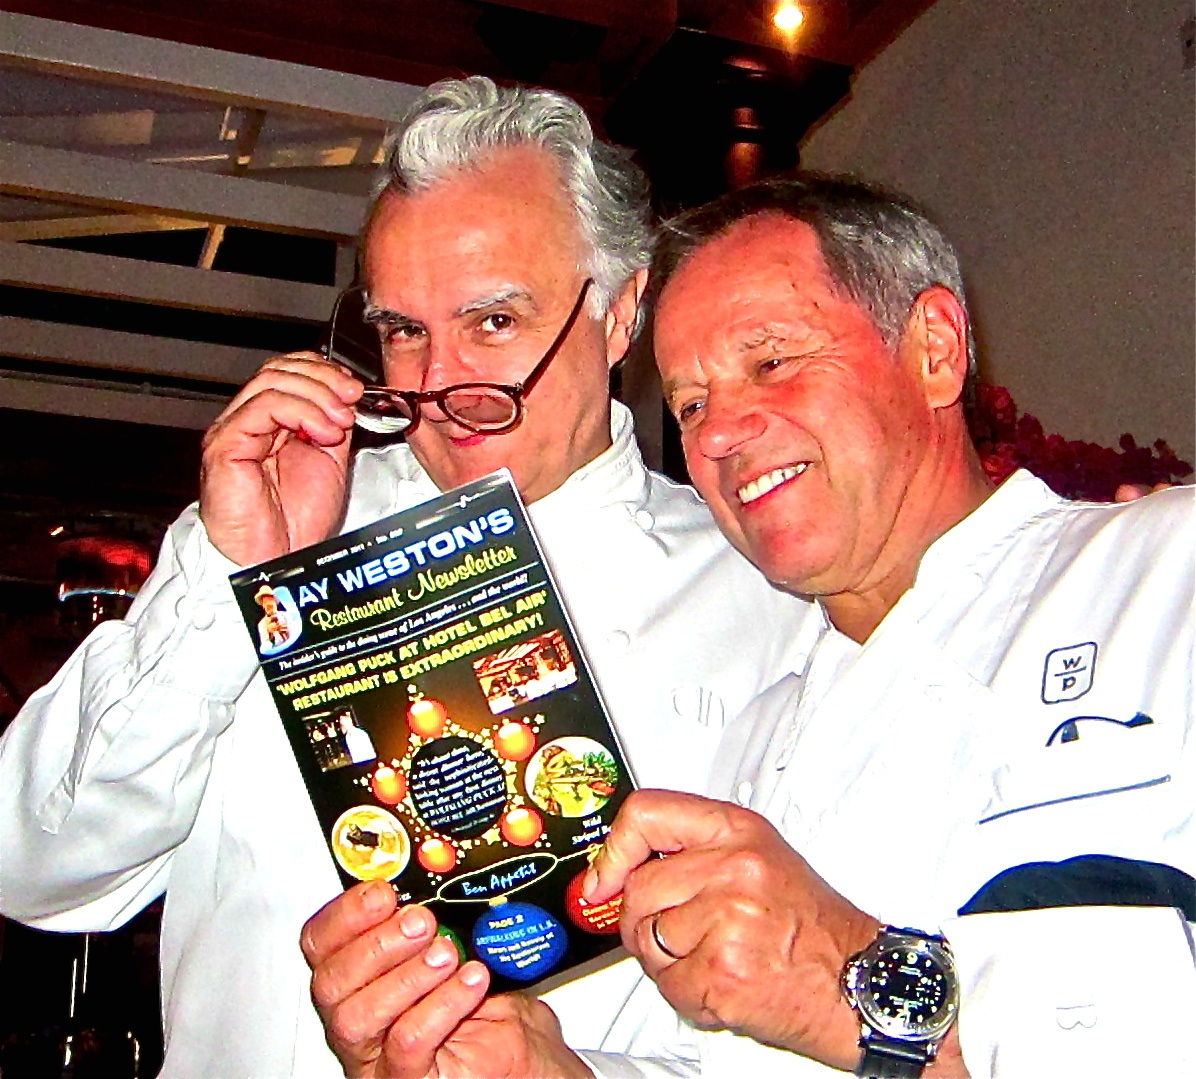 Ducasse and Puck examine Jay's newsletter about Bel Air